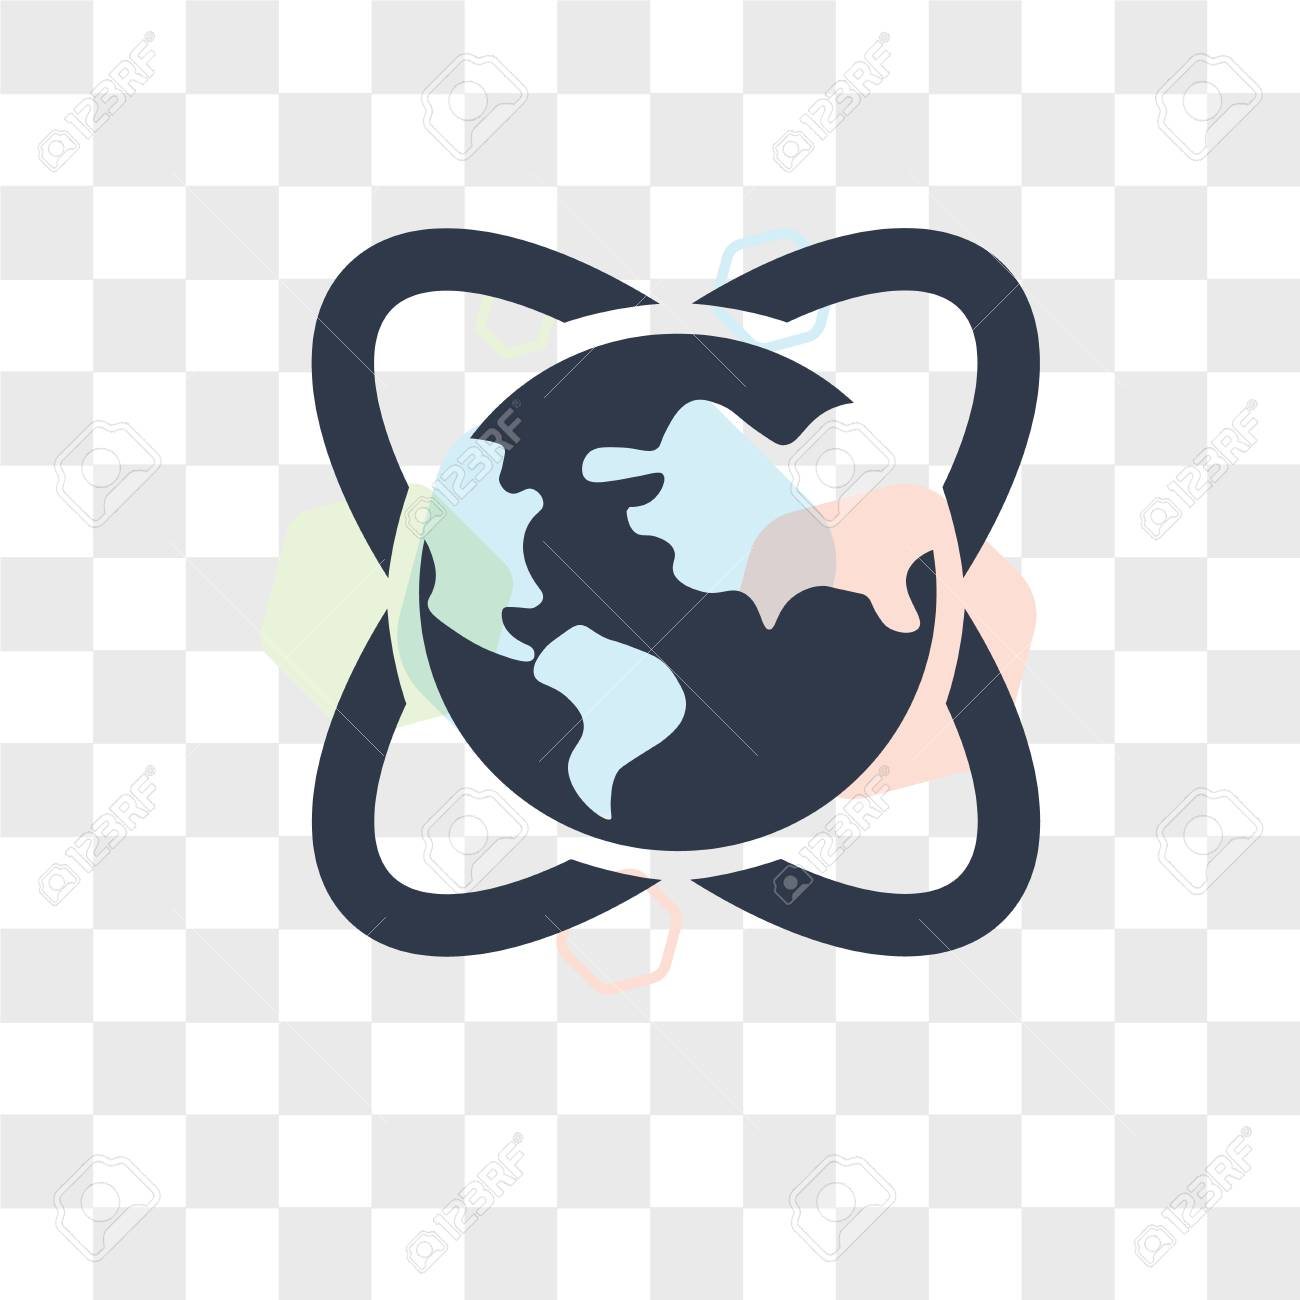 Global Awareness Vector Icon Isolated On Transparent Background 1300x1300